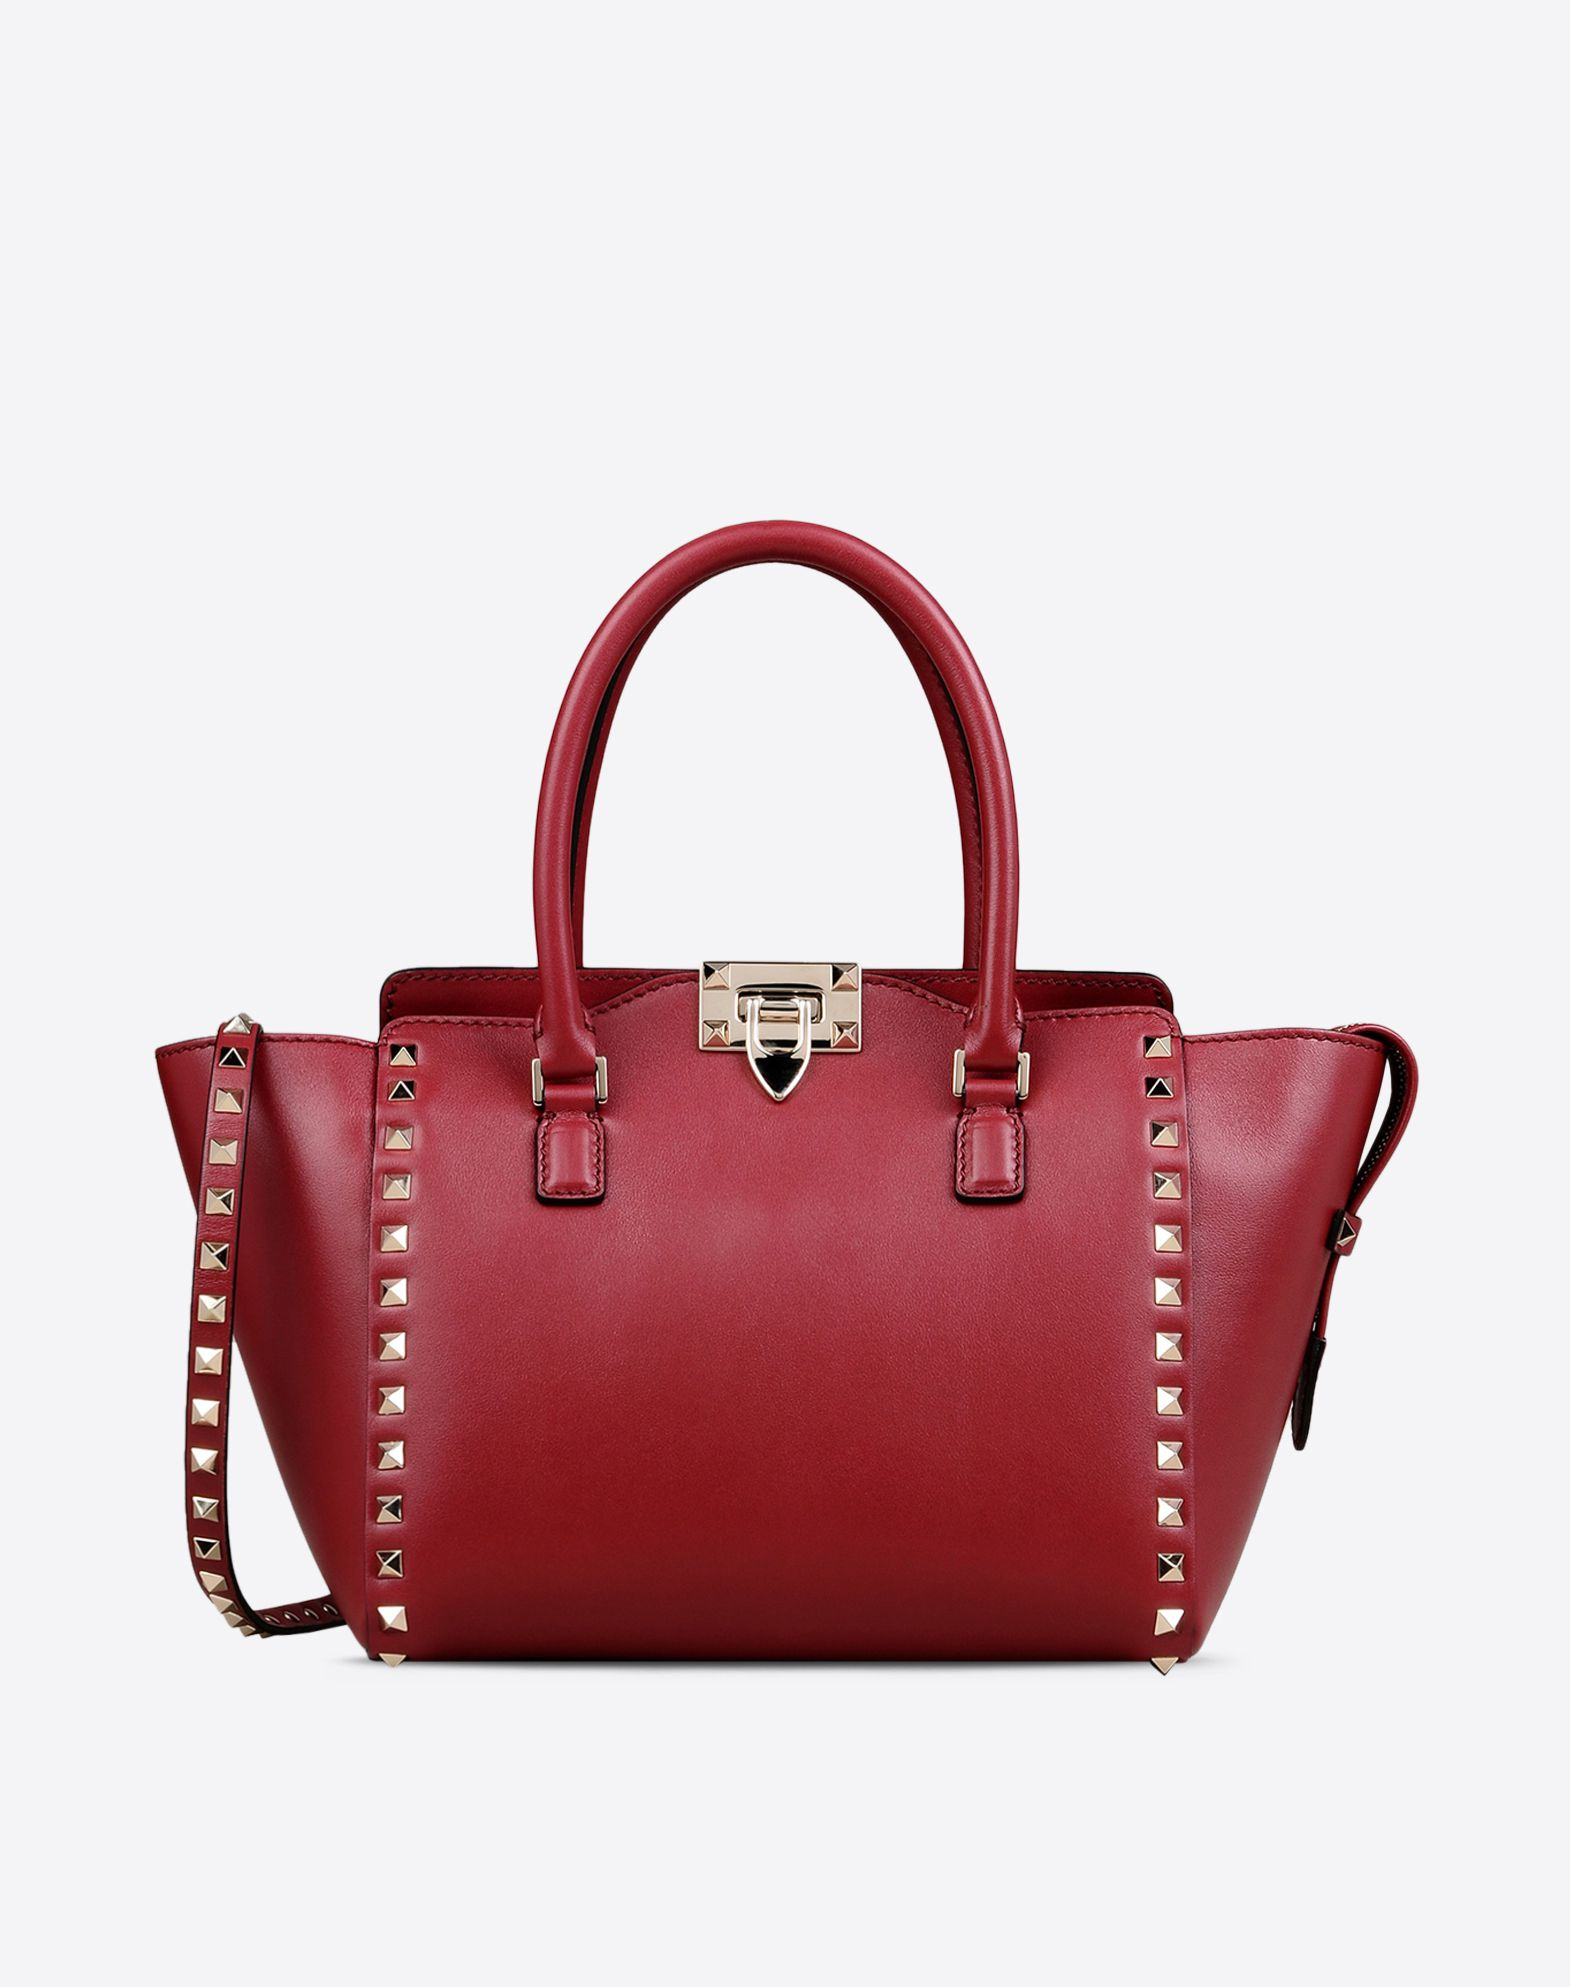 Valentino Rockstud Small Leather Double Handle Bag In Red